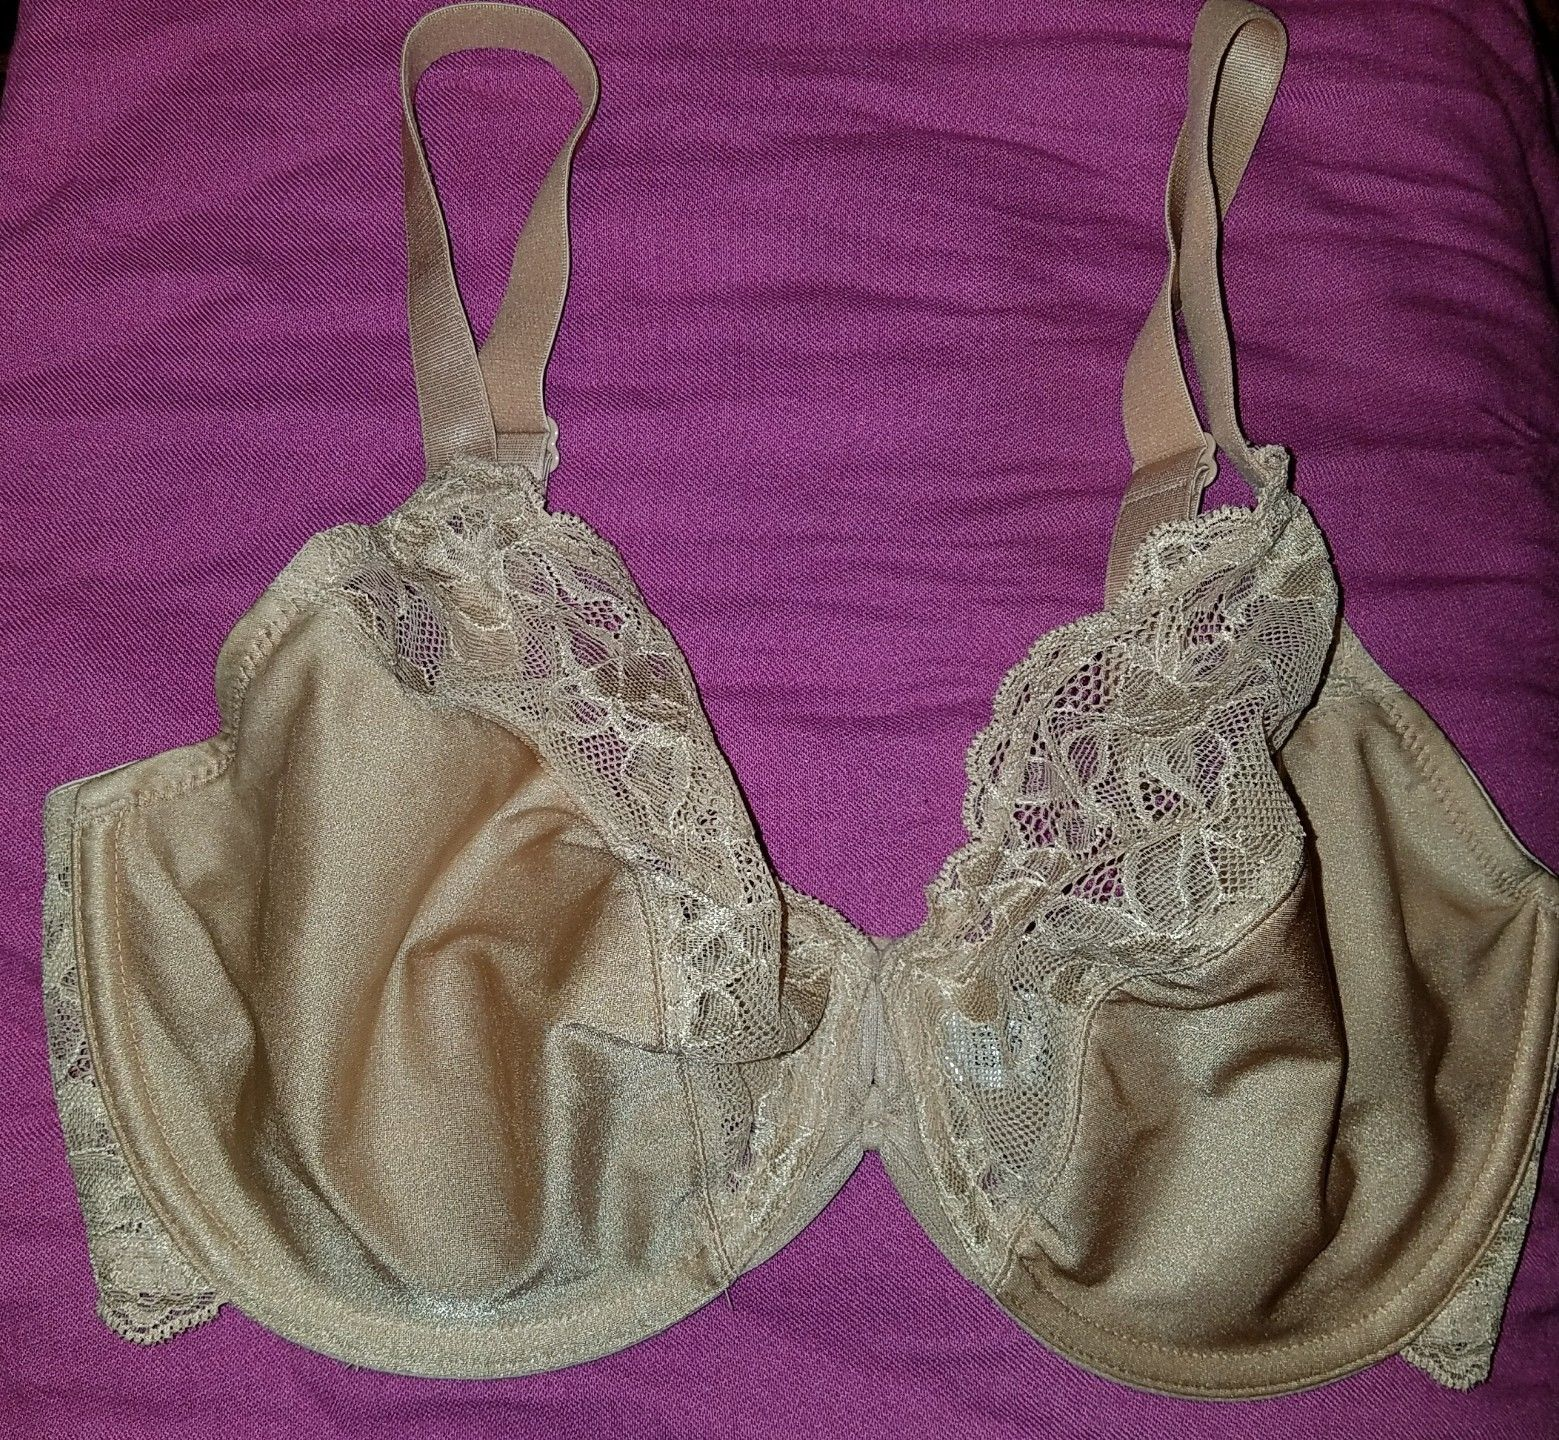 Body by Wacoal Underwire Bra 65115 RED 34C NEW WITH TAGS